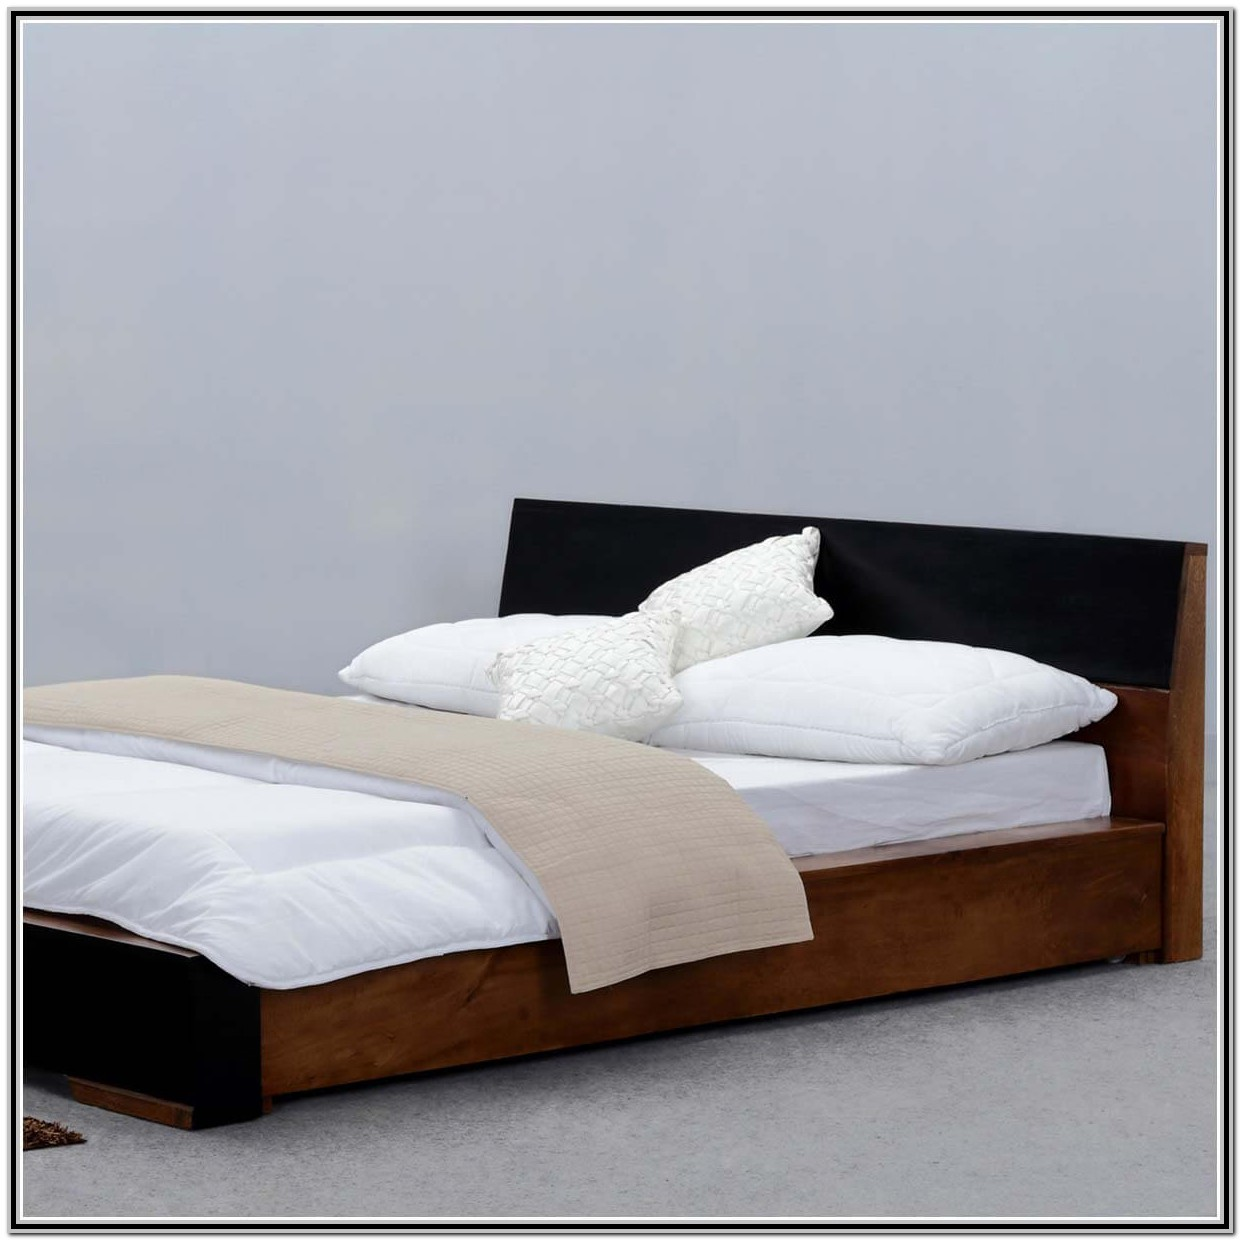 Mattress On The Floor Bed Frame